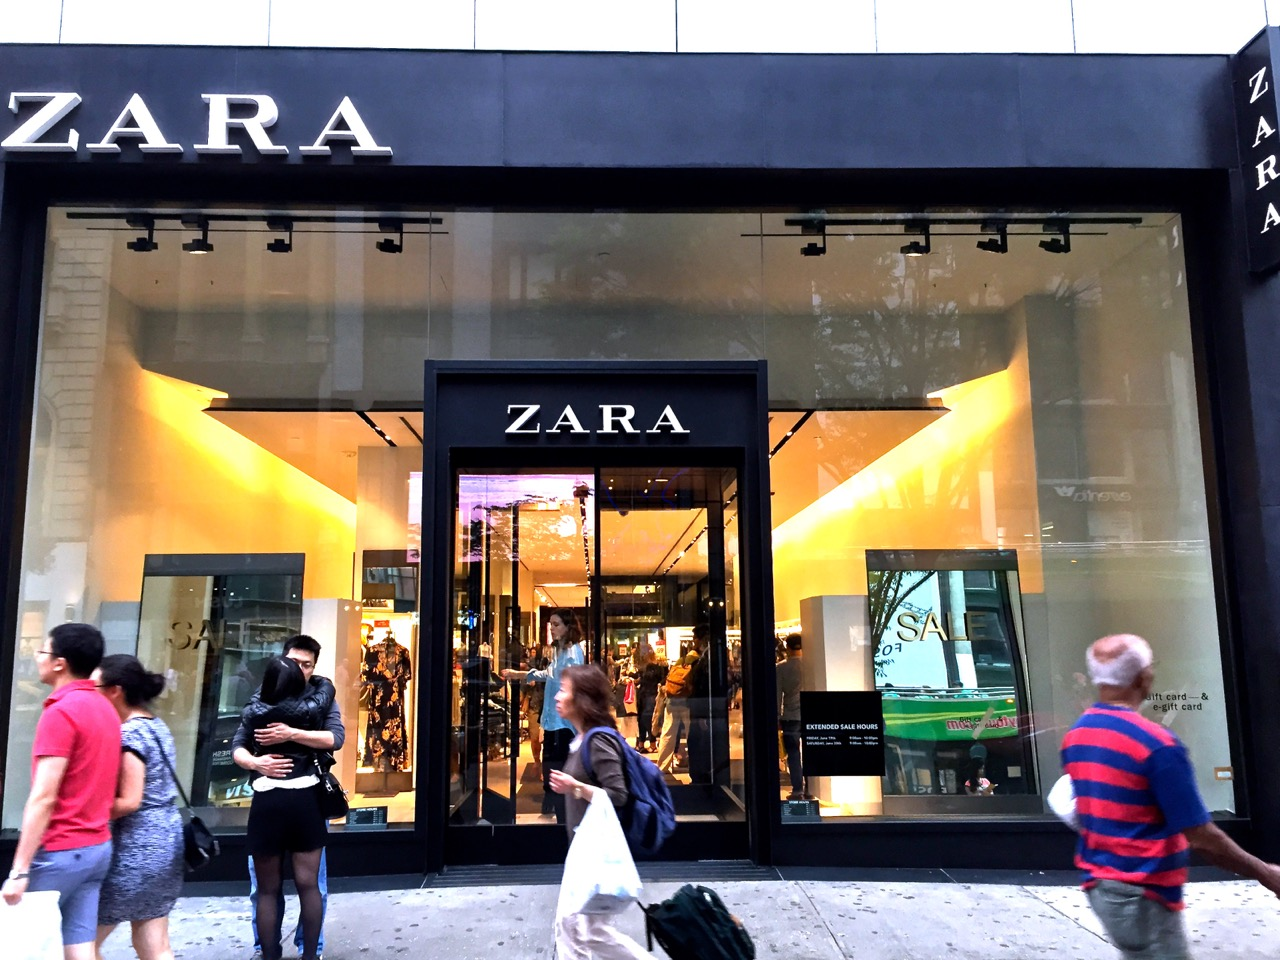 zara th st nyc impact storefront designs zara 34th street storefront